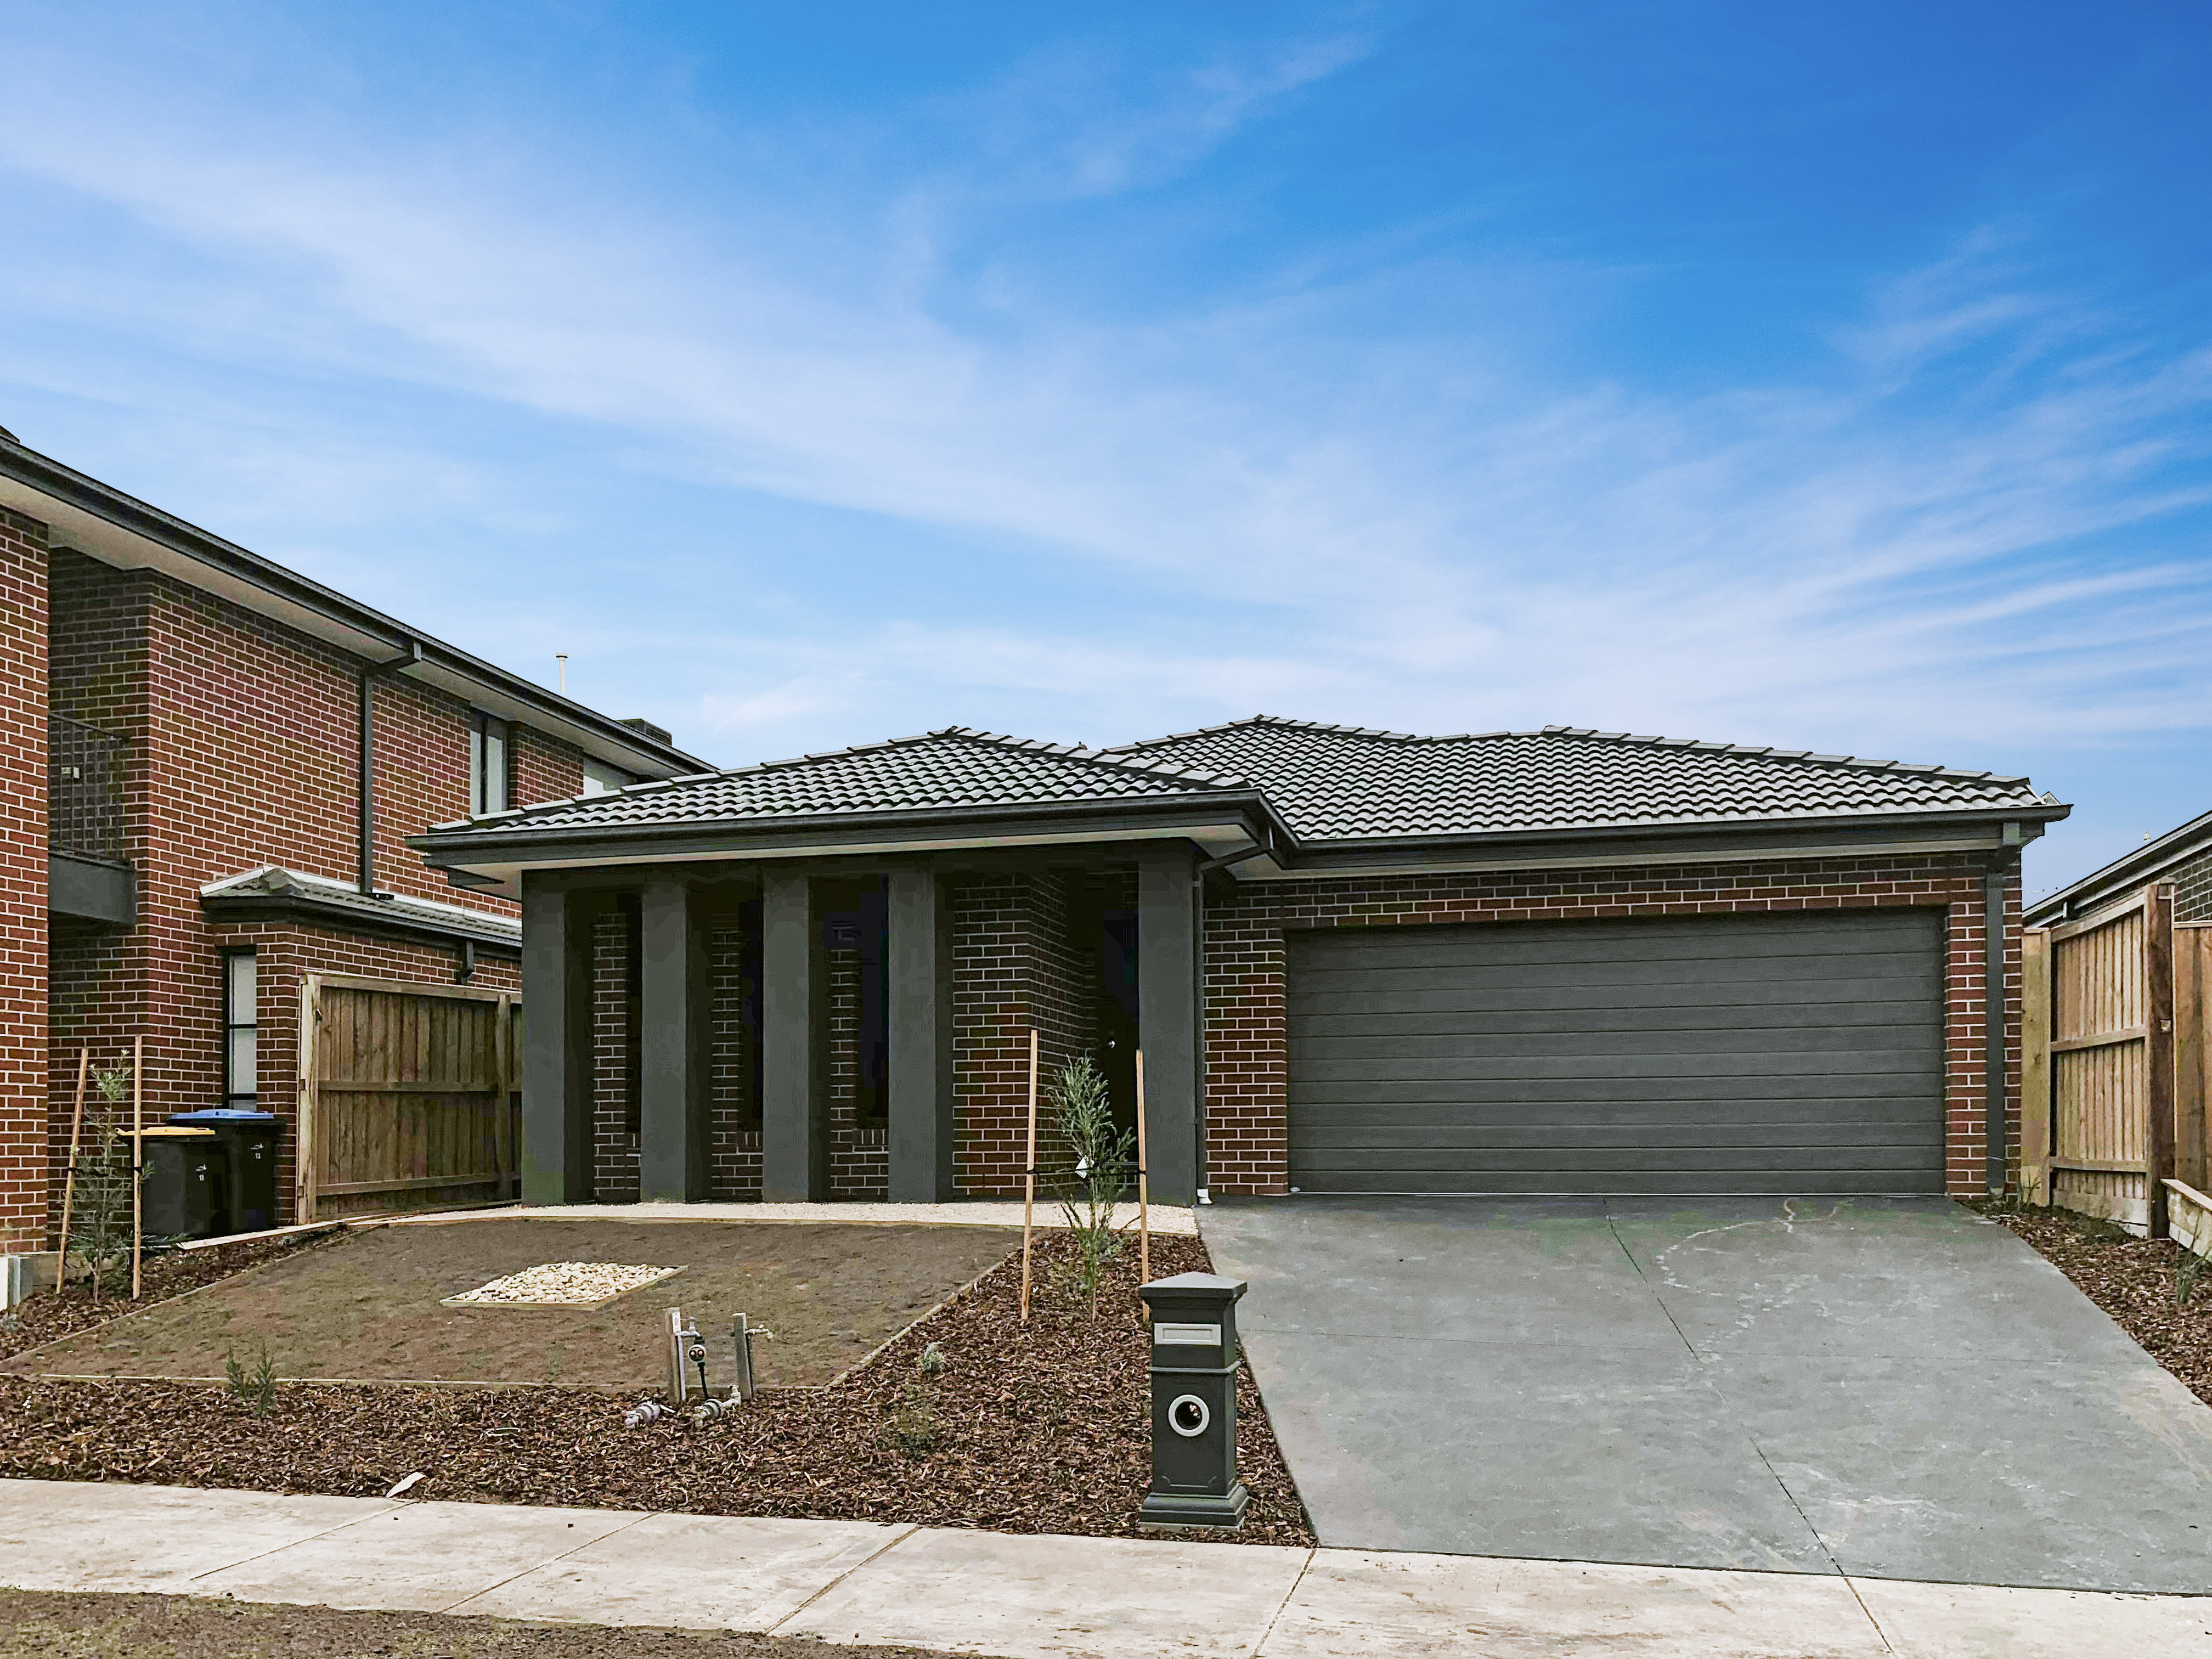 15 Amersfort Street, POINT COOK, VIC, 3030 - Image